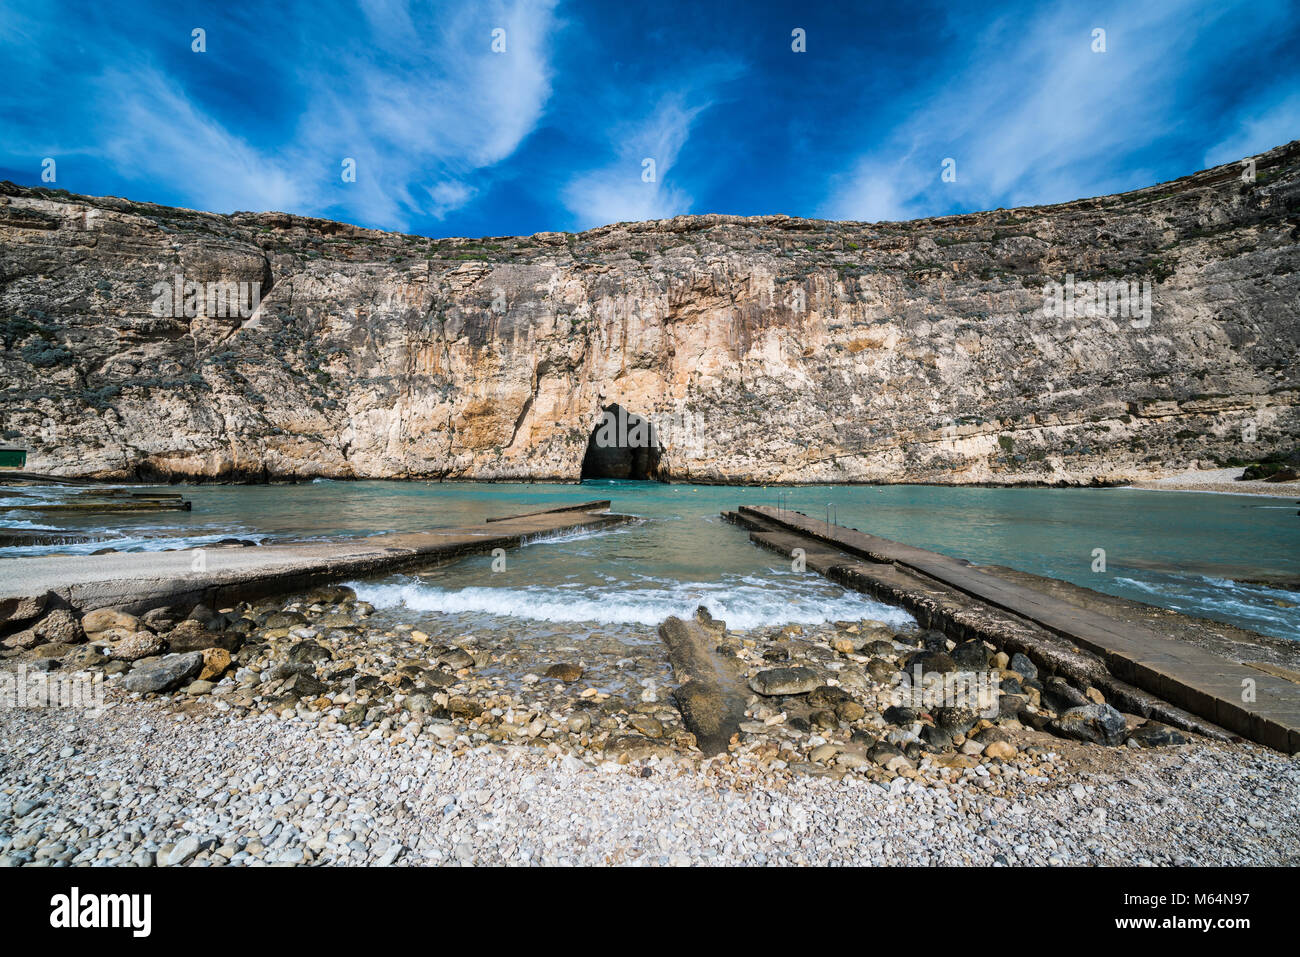 Inland Sea Divesite, Gozo, Malta, Europe. Stock Photo